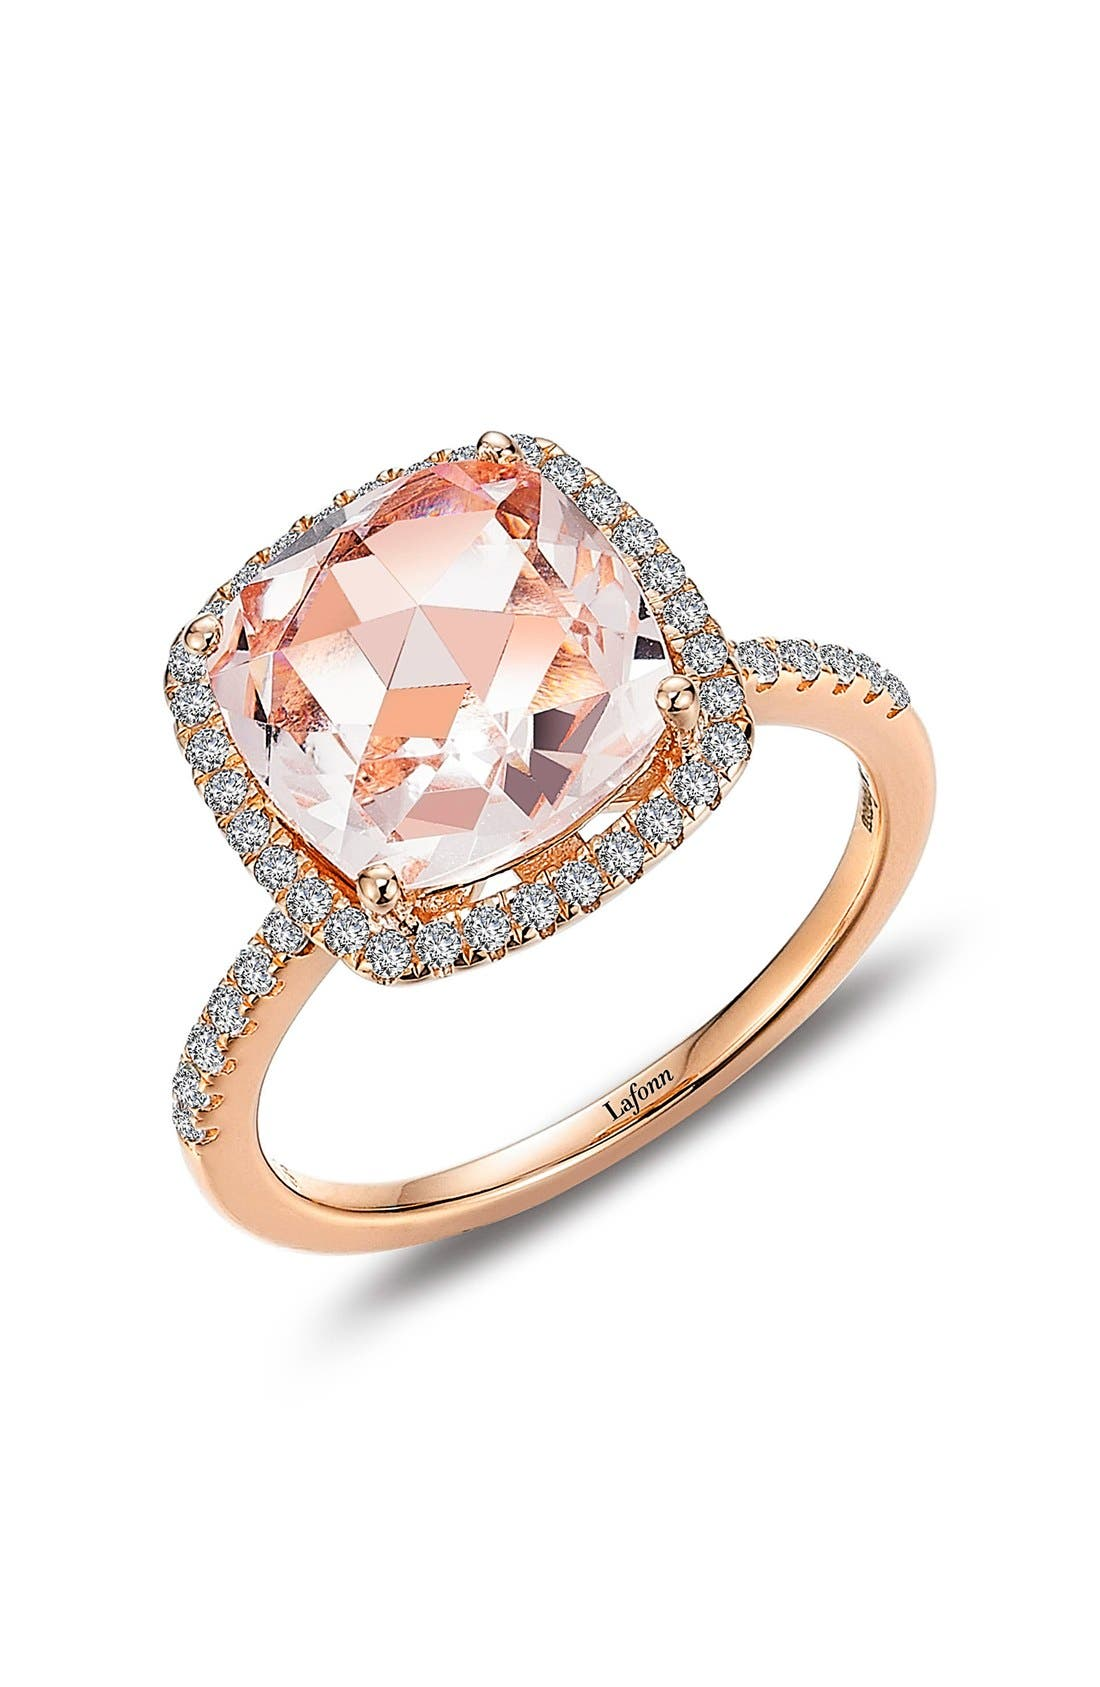 Classic Square Halo Ring,                             Main thumbnail 1, color,                             Pink / Rose Gold